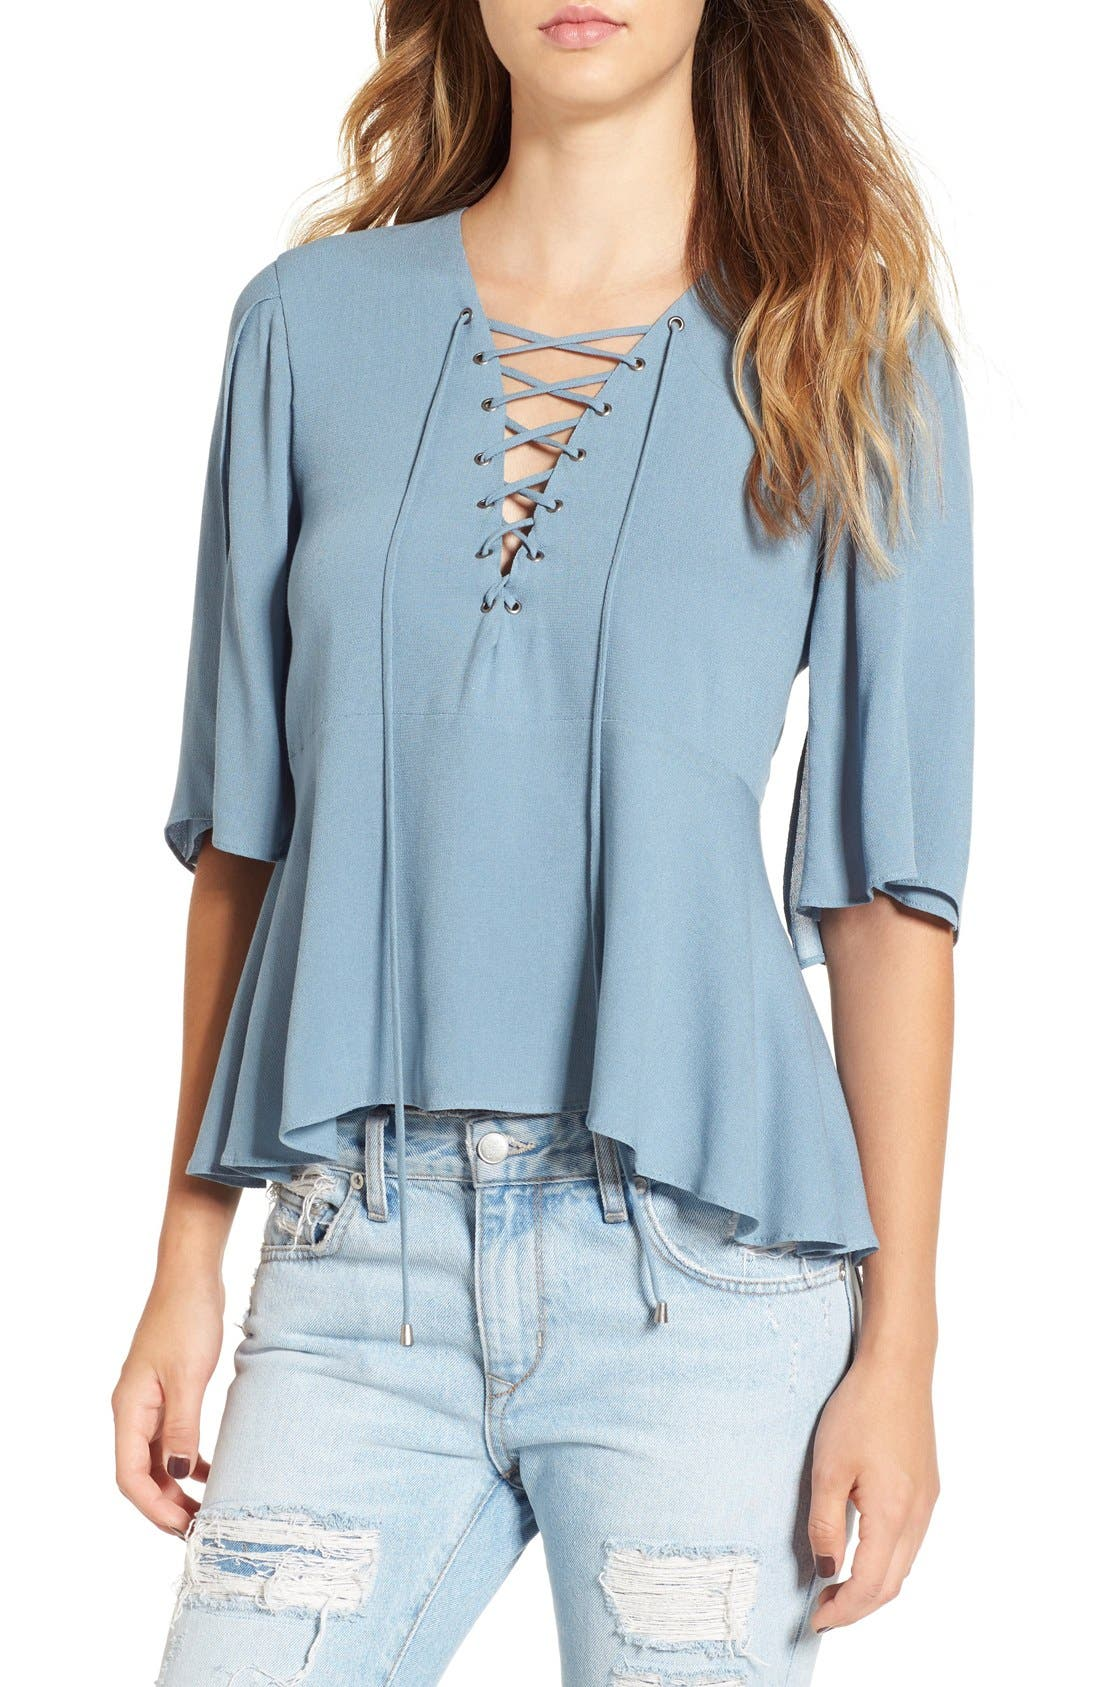 Alternate Image 1 Selected - Lovers + Friends 'Boulevard' Lace-Up Top